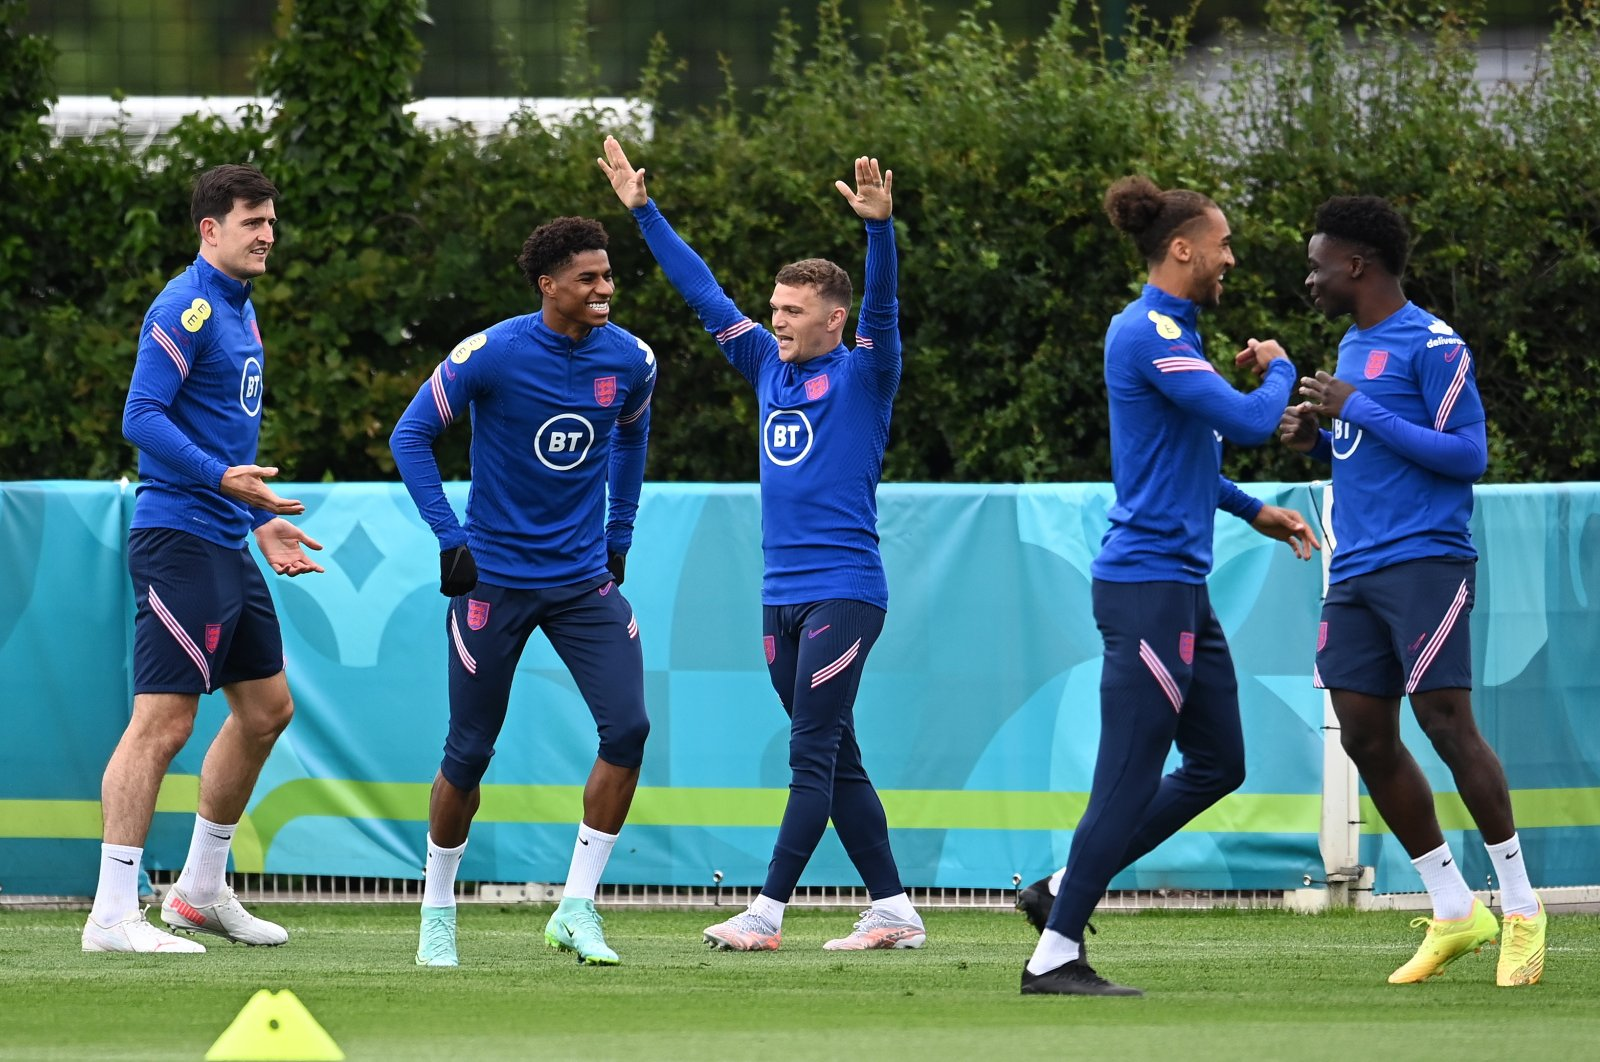 England players during a training session at Tottenham Hotspurs training ground in north London, England, June 19, 2021. (EPA Photo)